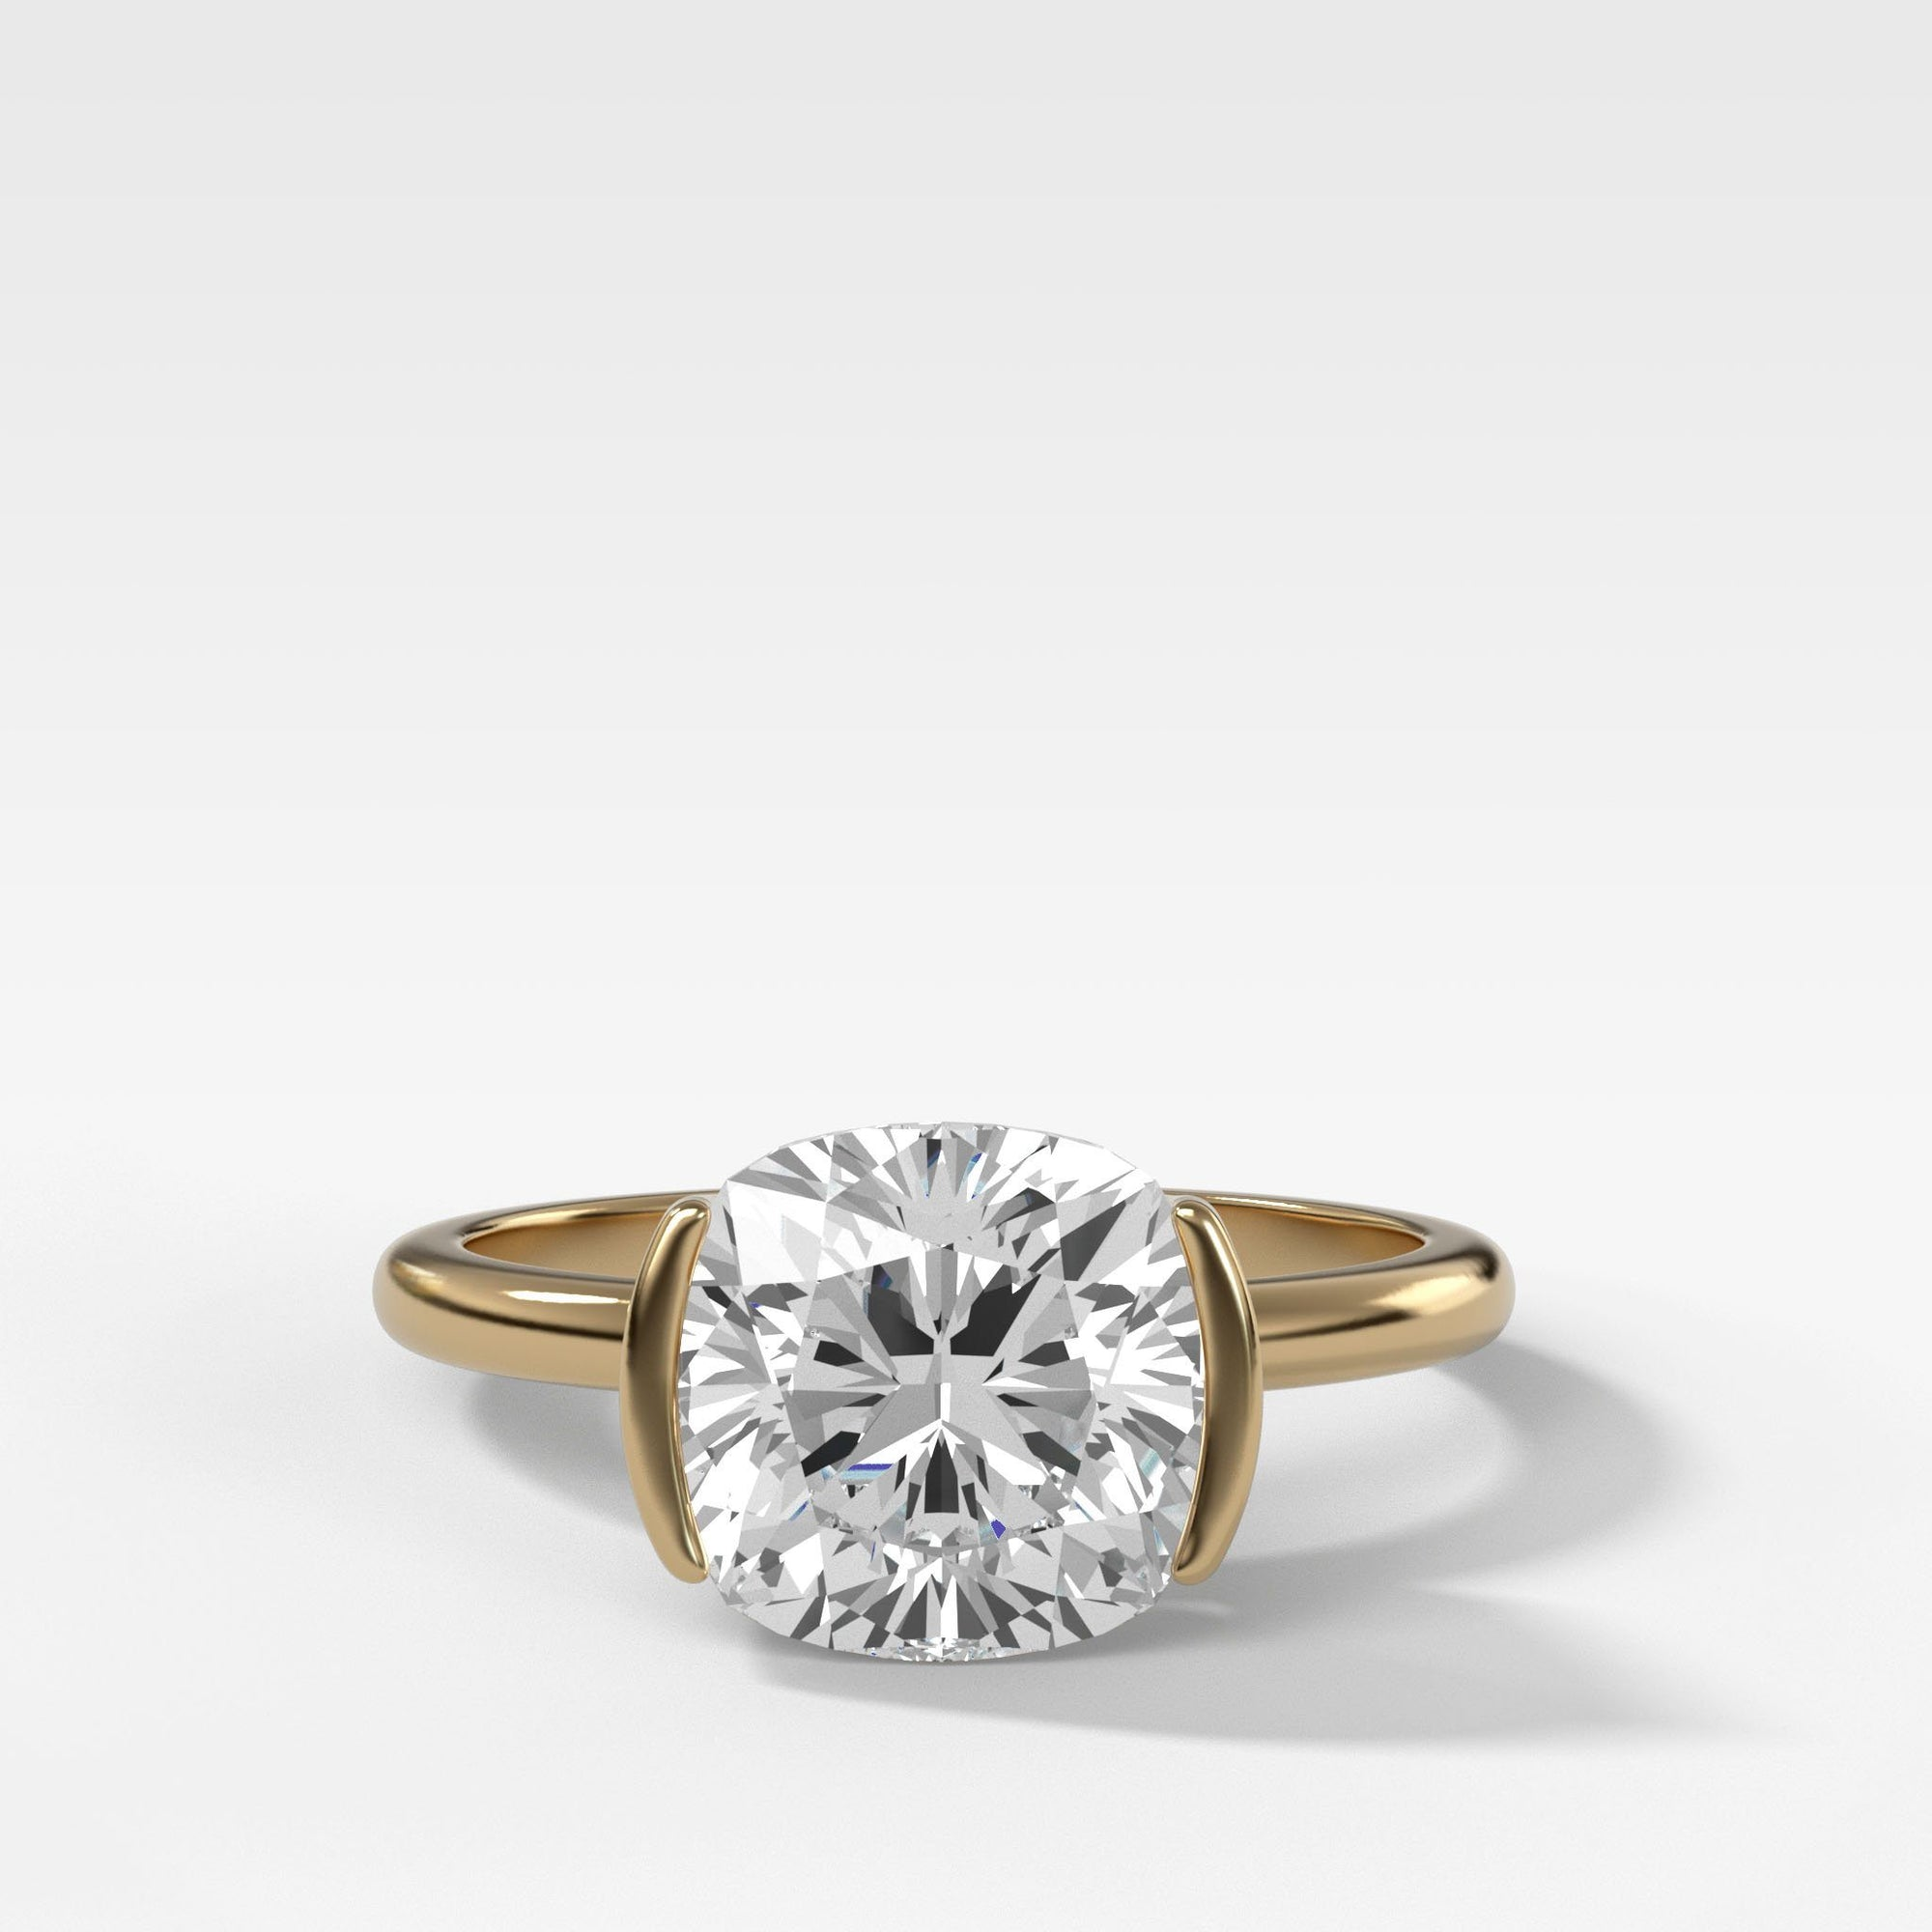 Half Bezel Solitaire Engagement Ring With Cushion Cut in Yellow Gold by Good Stone